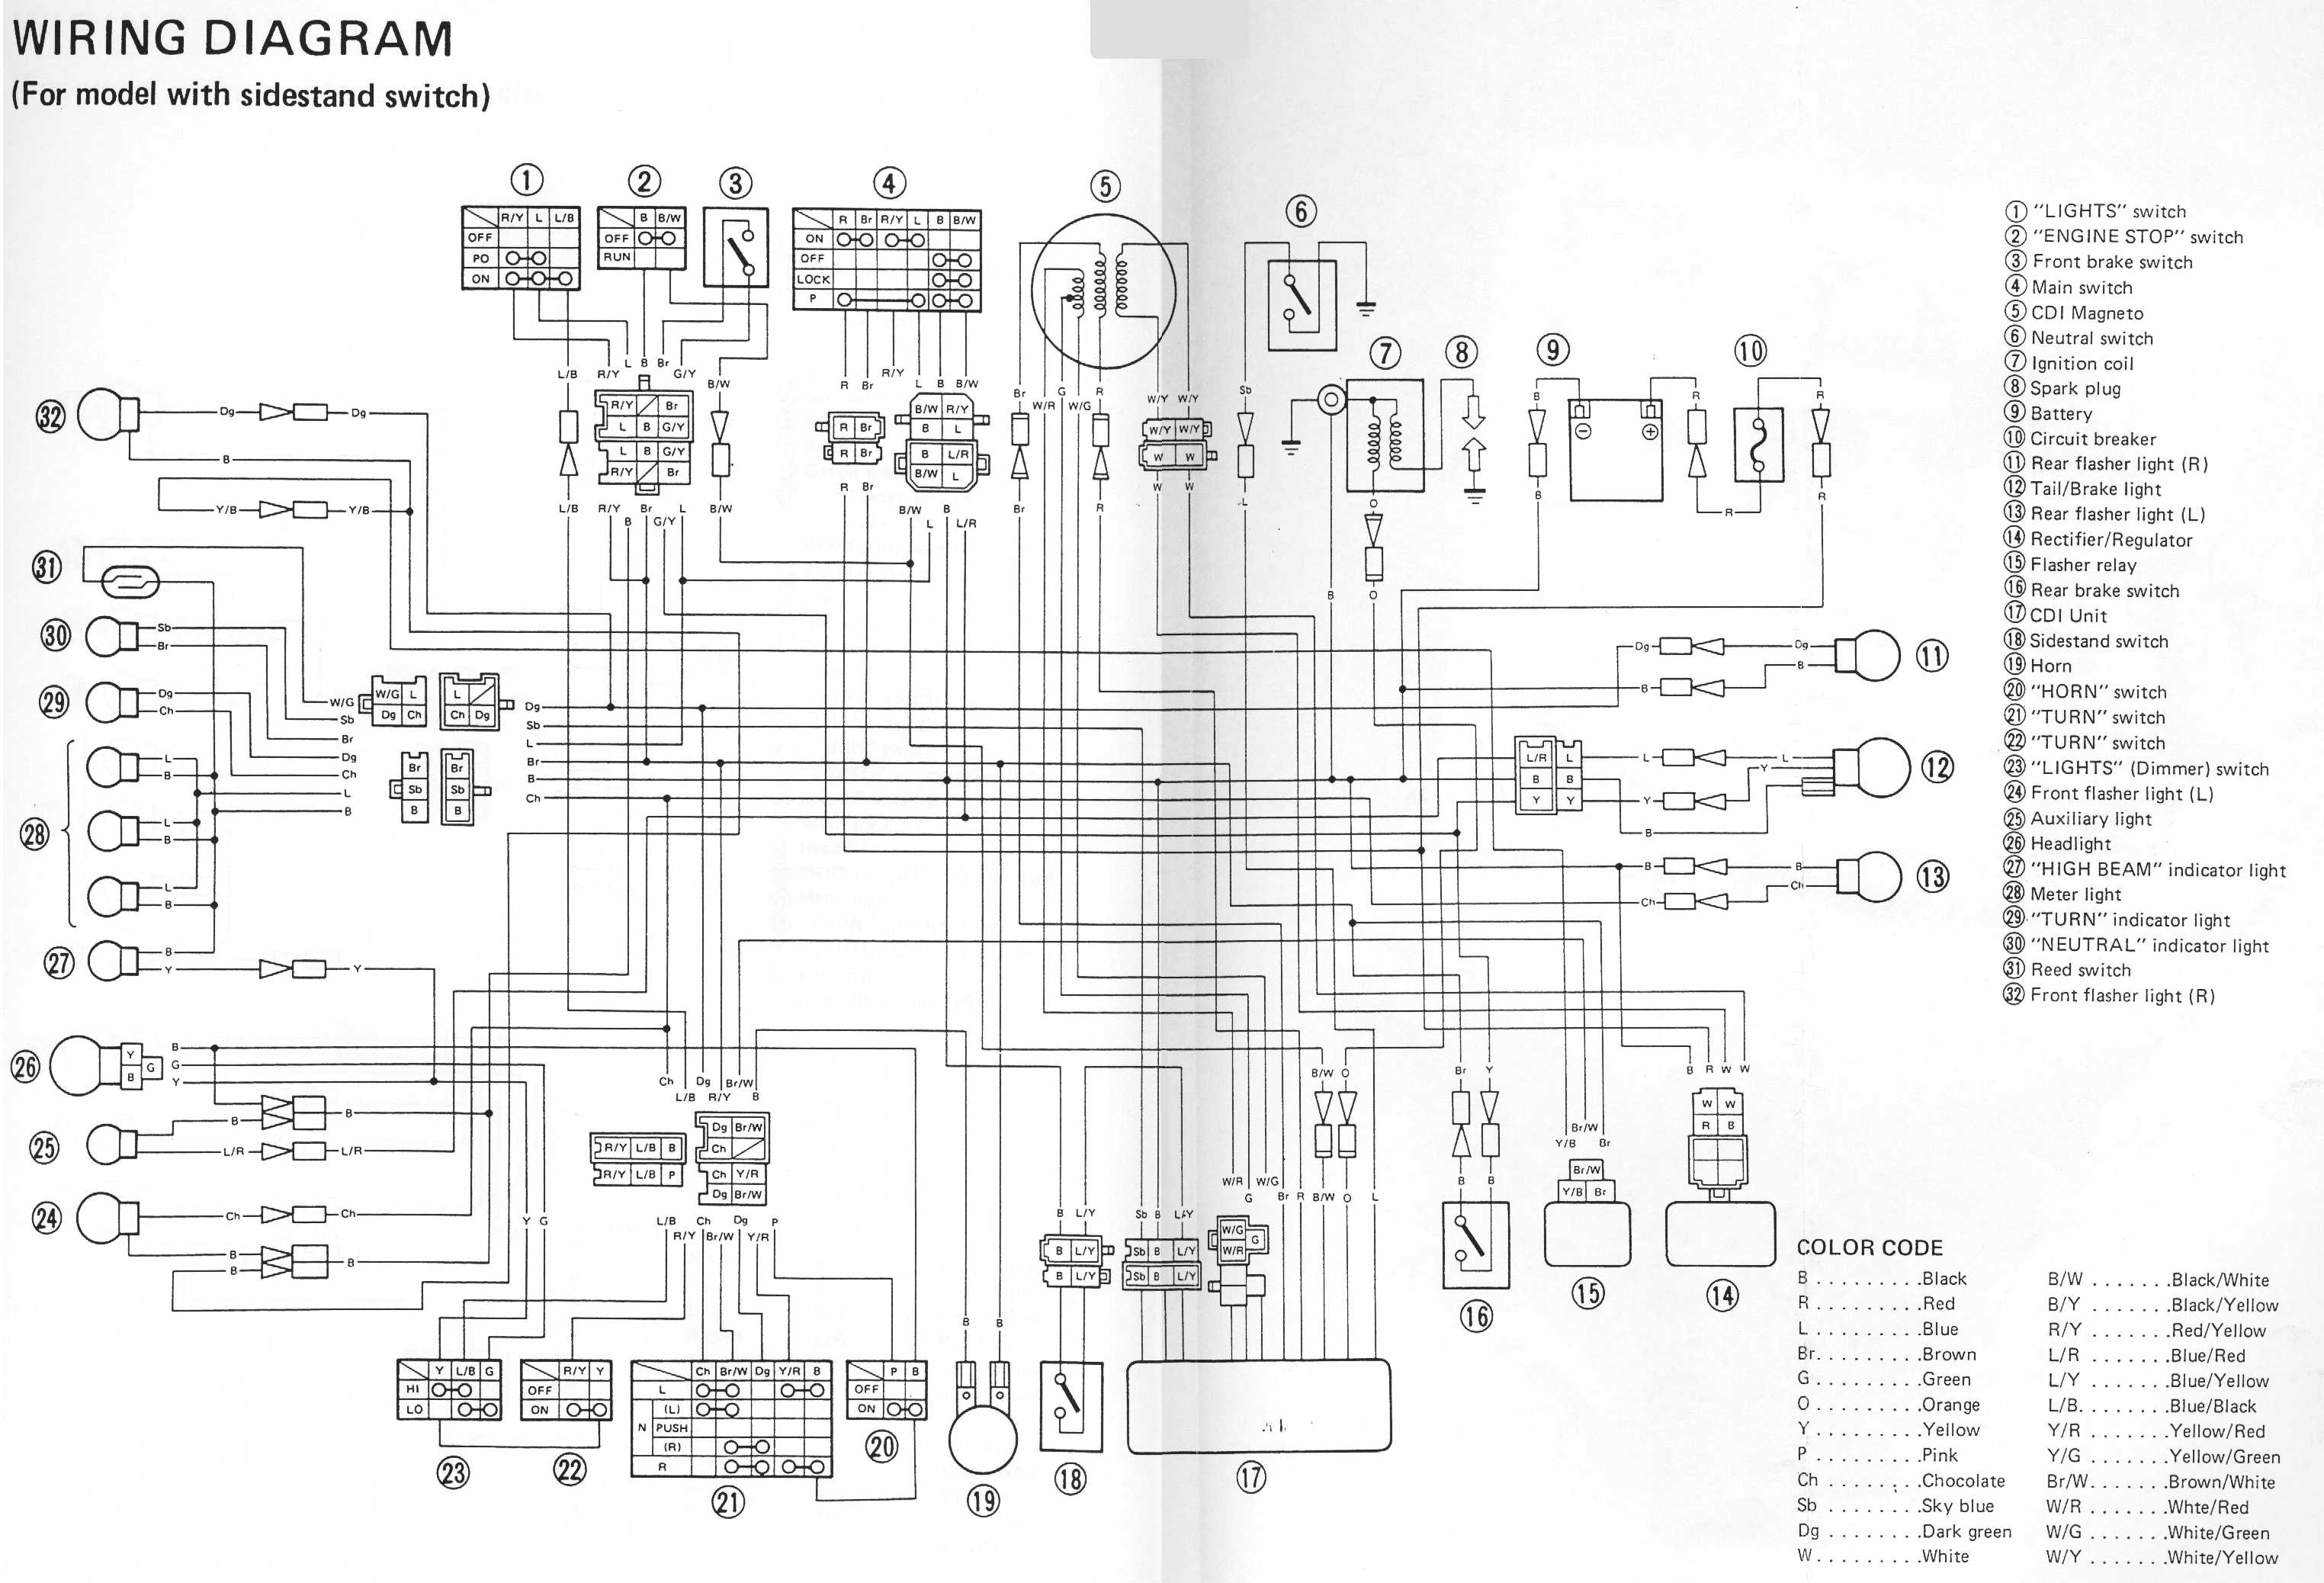 Yamaha_SRX6%284%29_Wiring_Diagram Yamaha Wiring Diagram on yamaha 1100 engine, kawasaki klr wiring diagram, yamaha 1100 carburetor, vstar wiring diagram, harley davidson wiring diagram, yamaha 1100 fuel diagram, yamaha 1100 exhaust, kawasaki 750 wiring diagram, yamaha 1100 accessories, yamaha 1100 wheels, yamaha 1100 parts, honda vtx wiring diagram, yamaha 1100 fuel pump, honda magna wiring diagram, yamaha 1100 seats, yamaha 1100 drive shaft, honda cbr wiring diagram, yamaha 1100 frame,